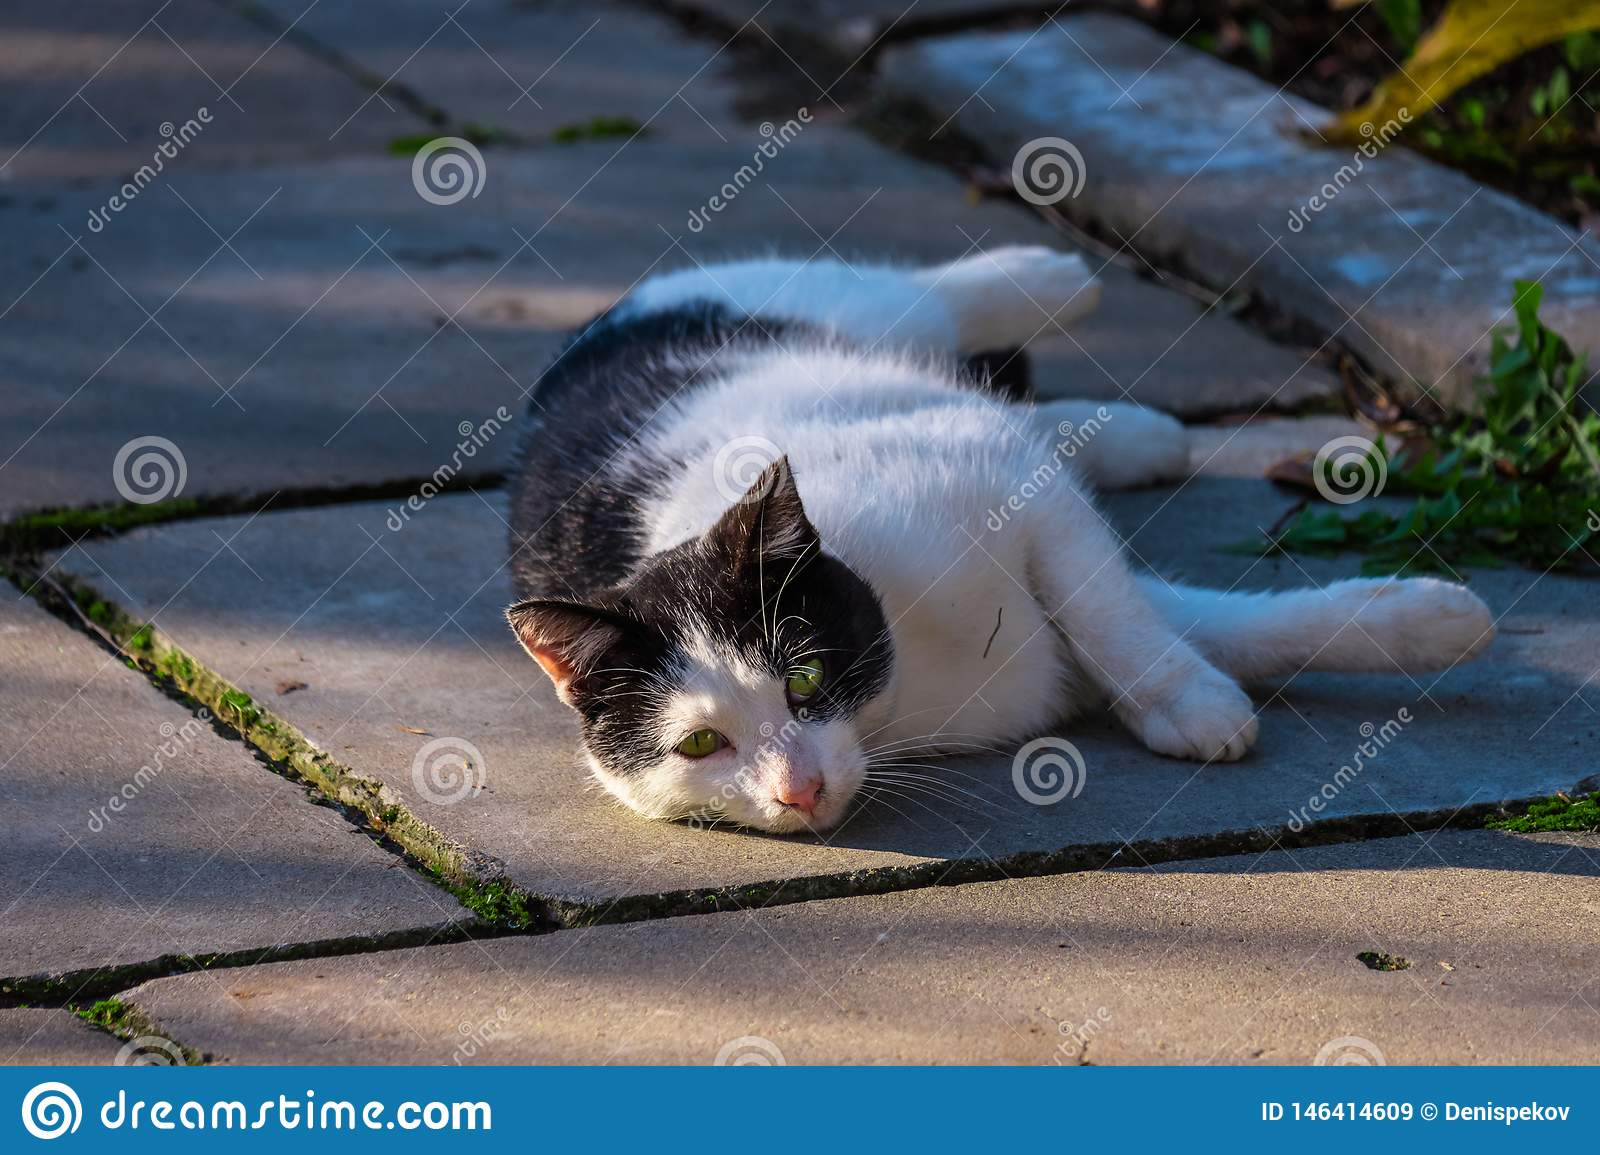 The cat is resting on  street